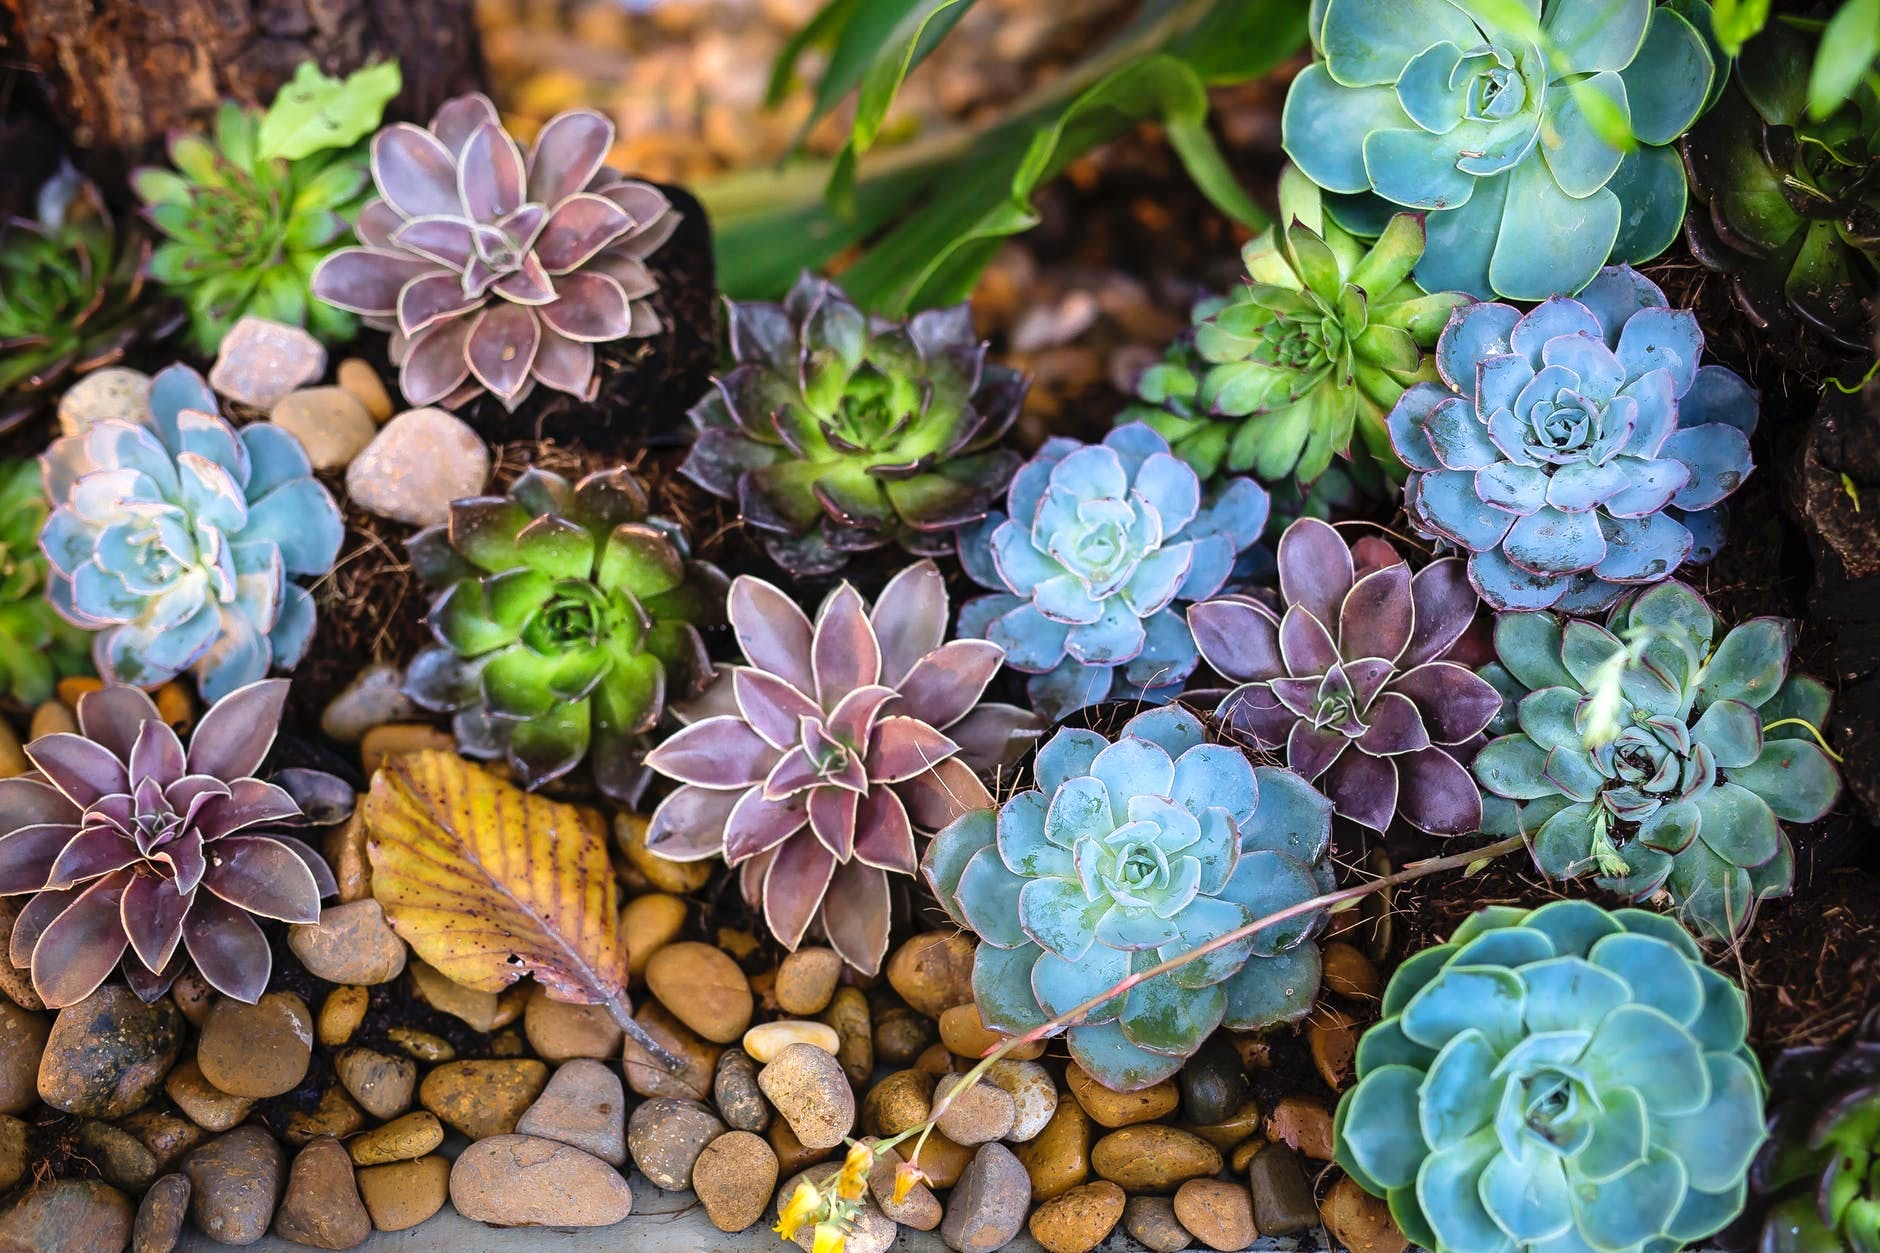 Flower,Blue,Plant,Echeveria,Leaf,Botany,Stonecrop family,Groundcover,Spring,Wildflower